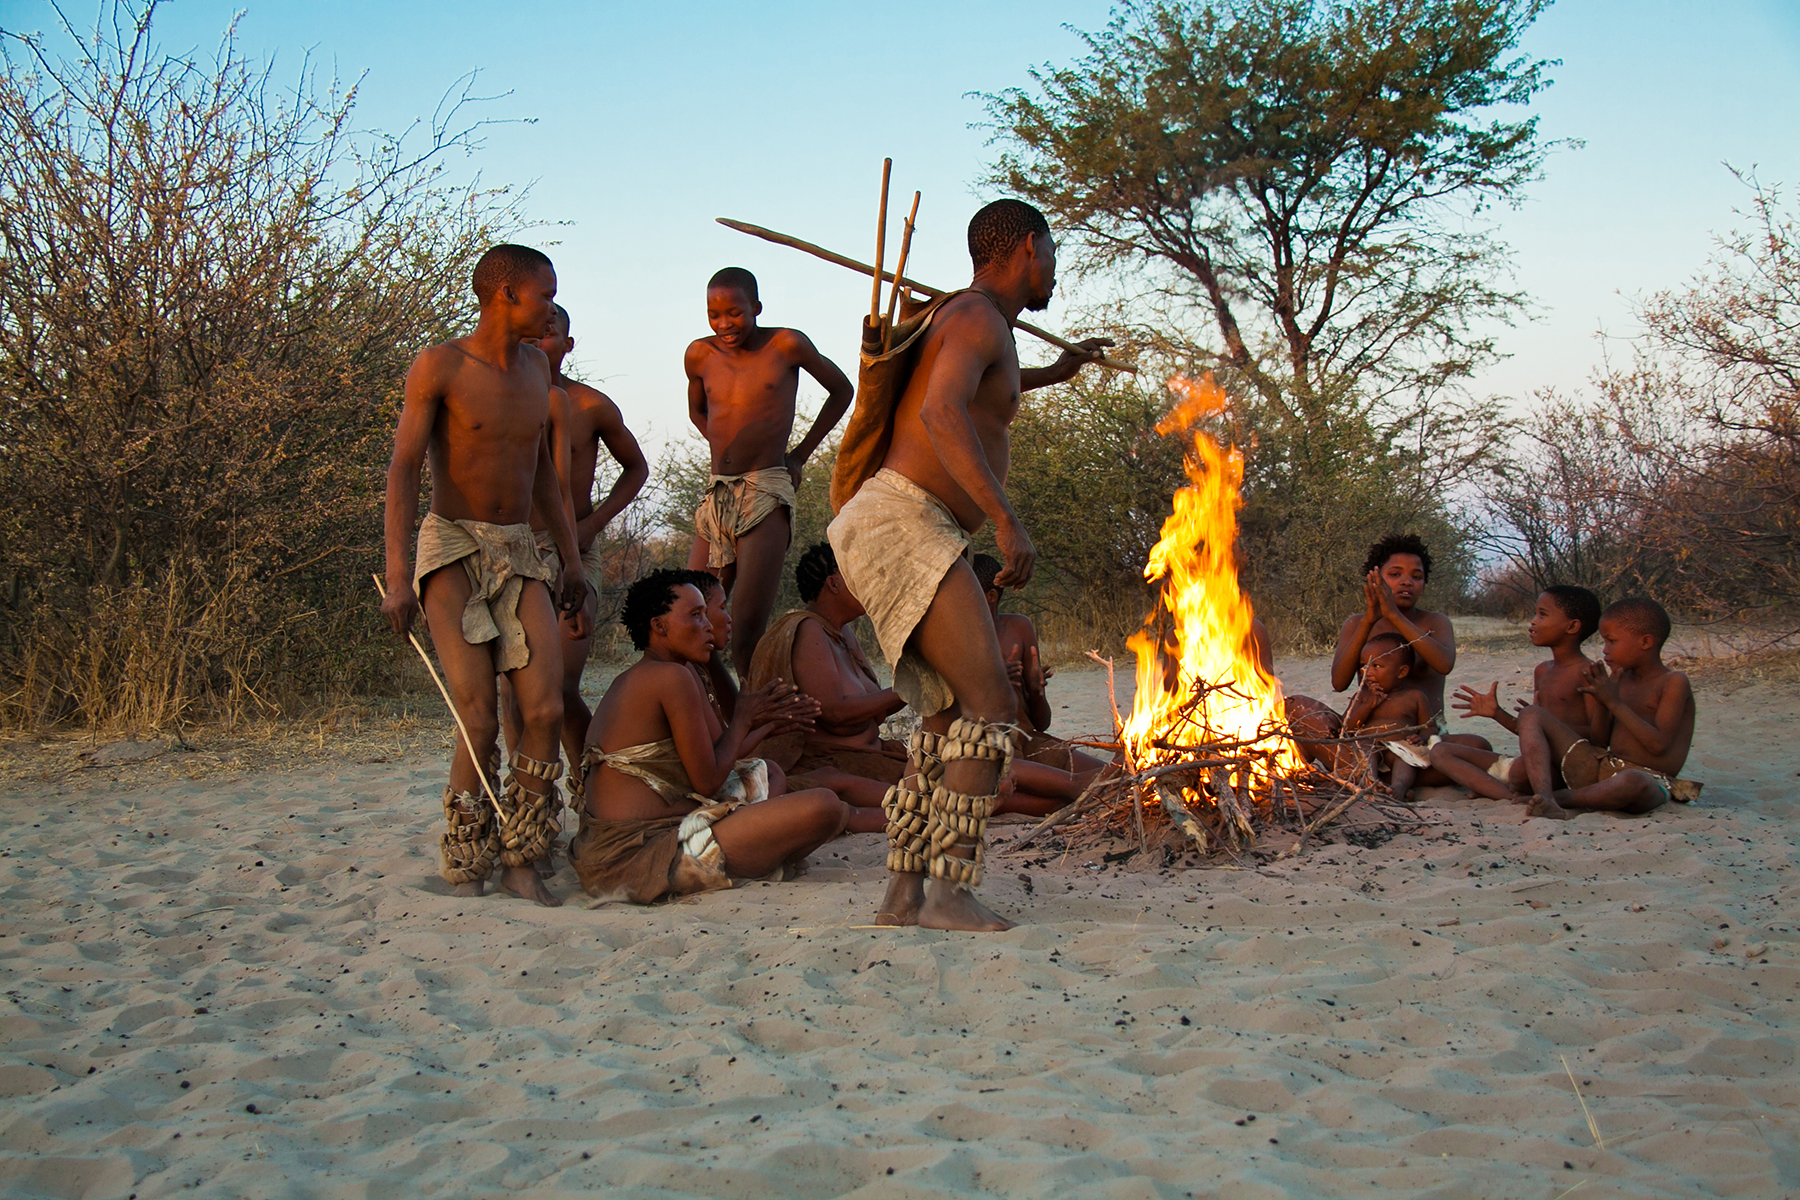 Grassland Bushman Lodge (Central Kalahari GR, Botswana) is a little world of wonders